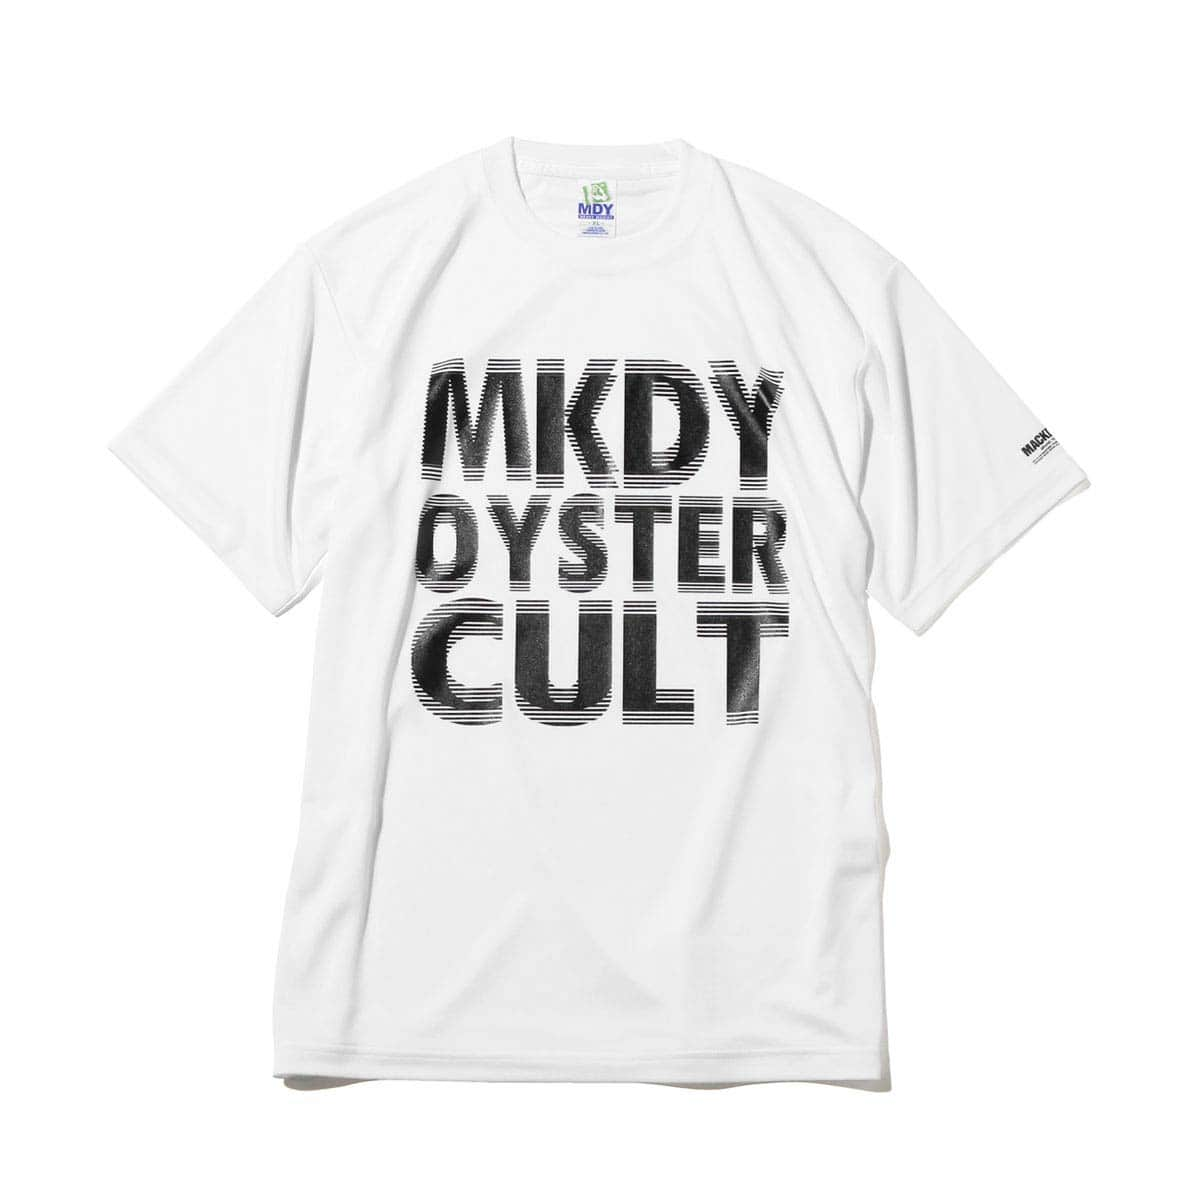 MACKDADDY MKDY OYSTER CULT S/S DRY TEE  WHITE_photo_large